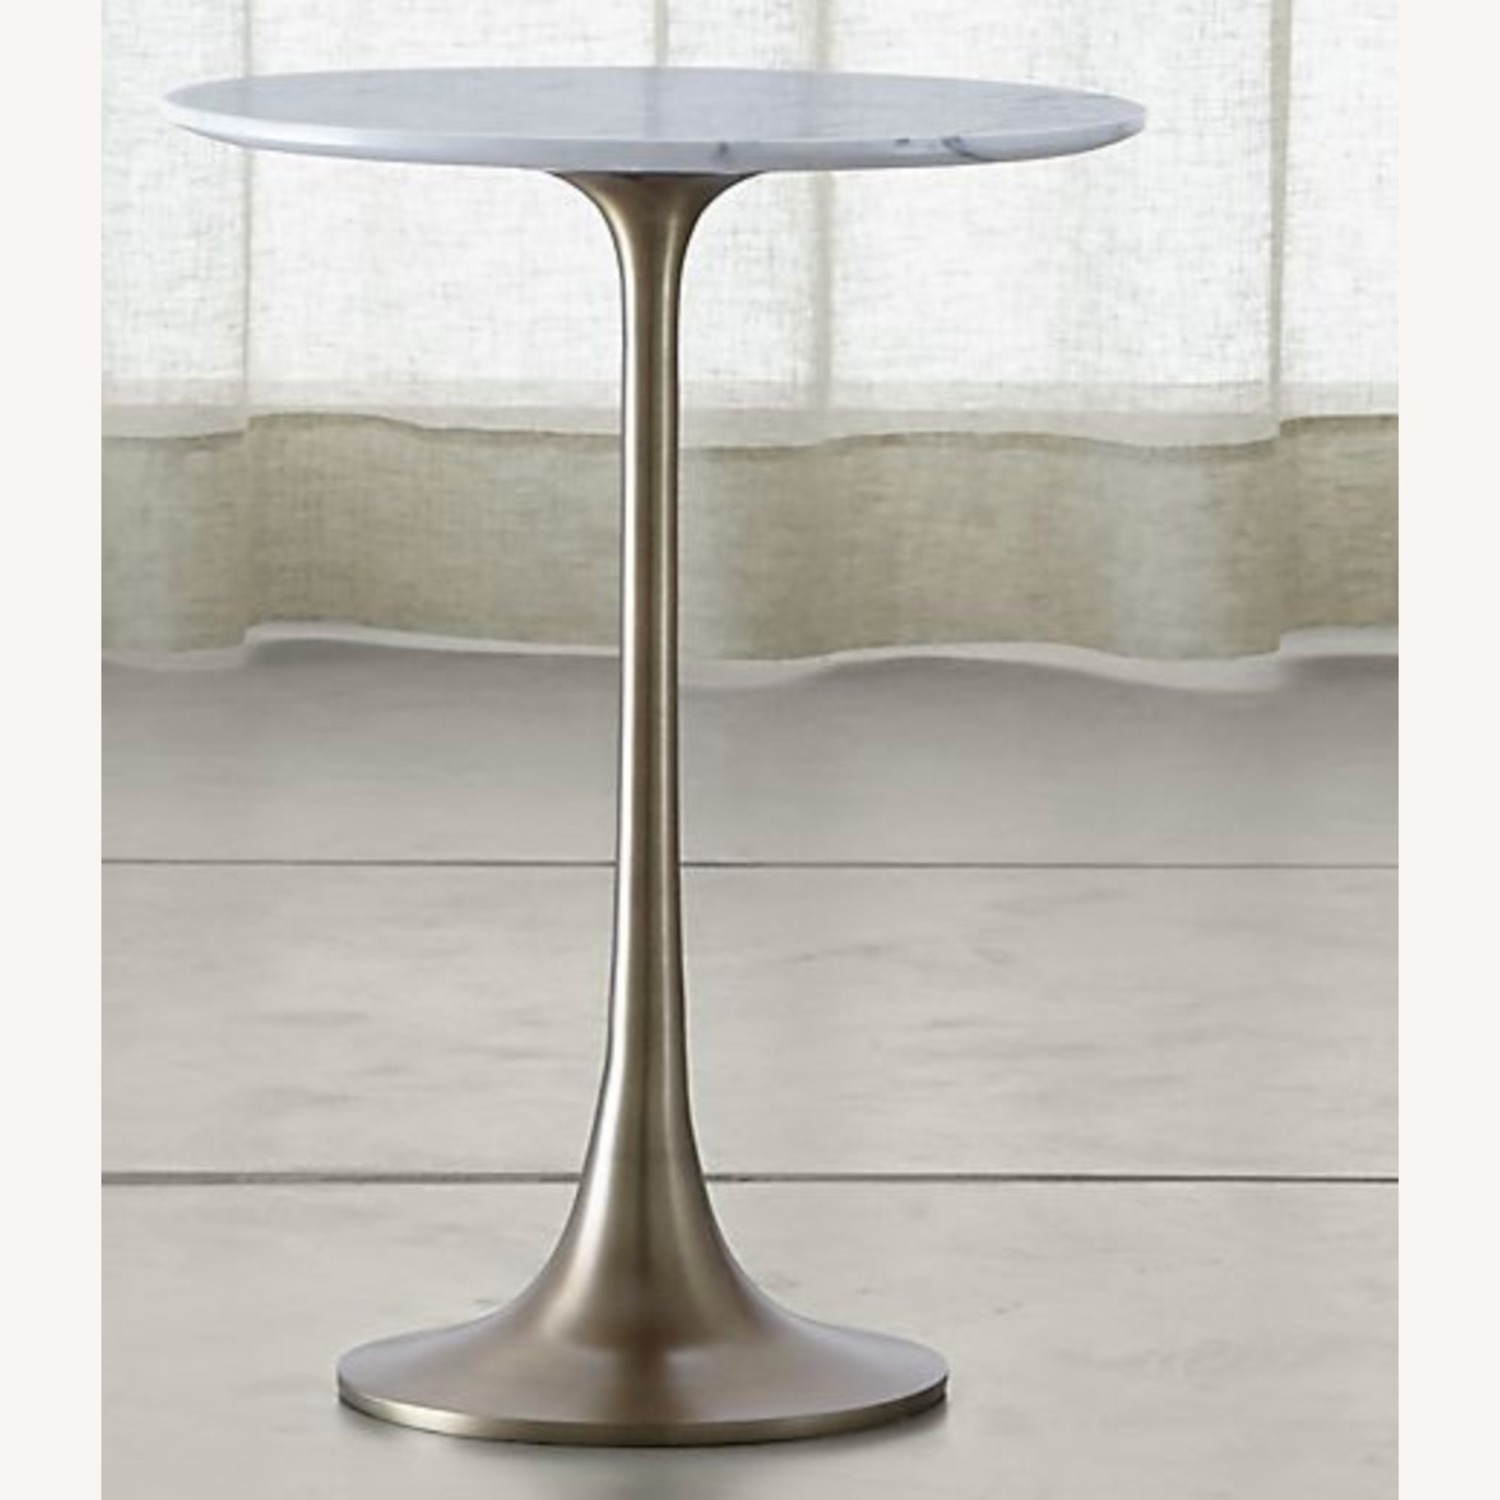 Crate & Barrel Nero White Marble Accent Table - image-3